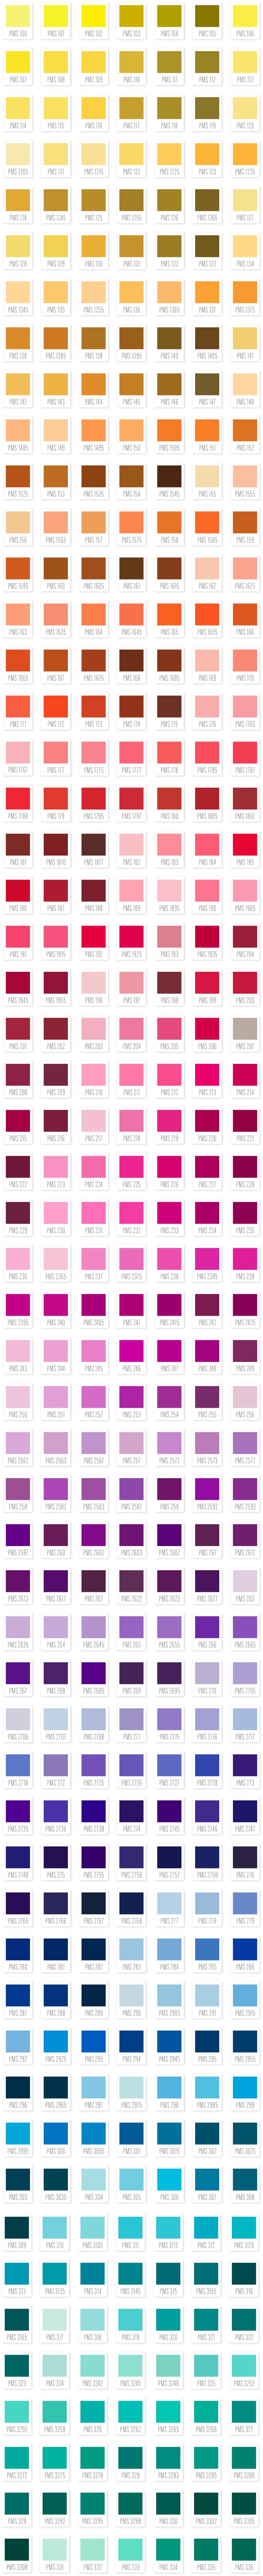 pantone ink matches for letterpress printing.